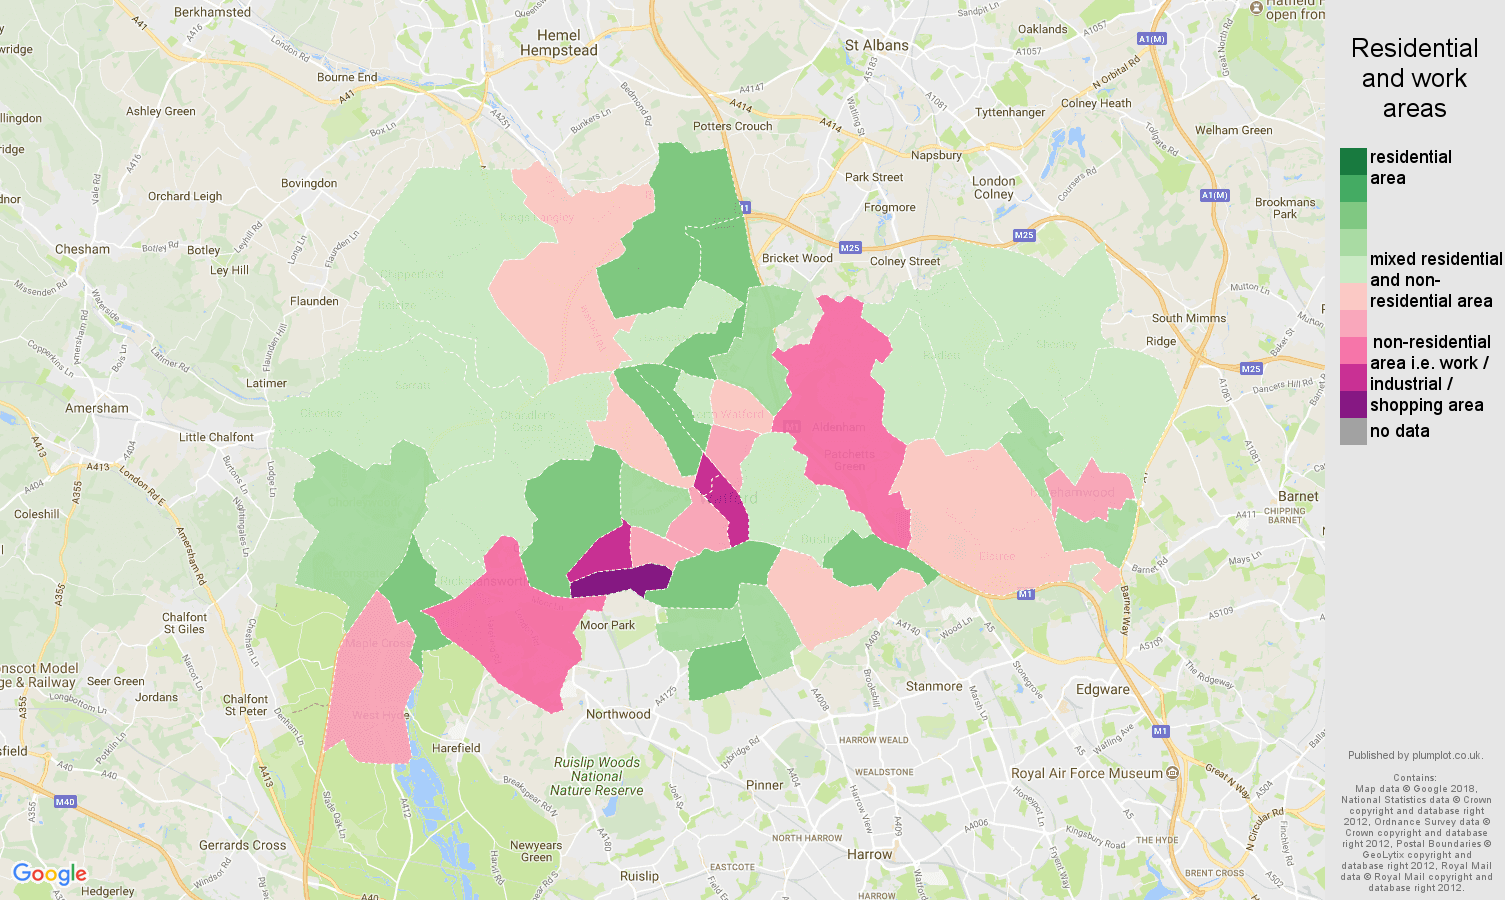 Watford residential areas map